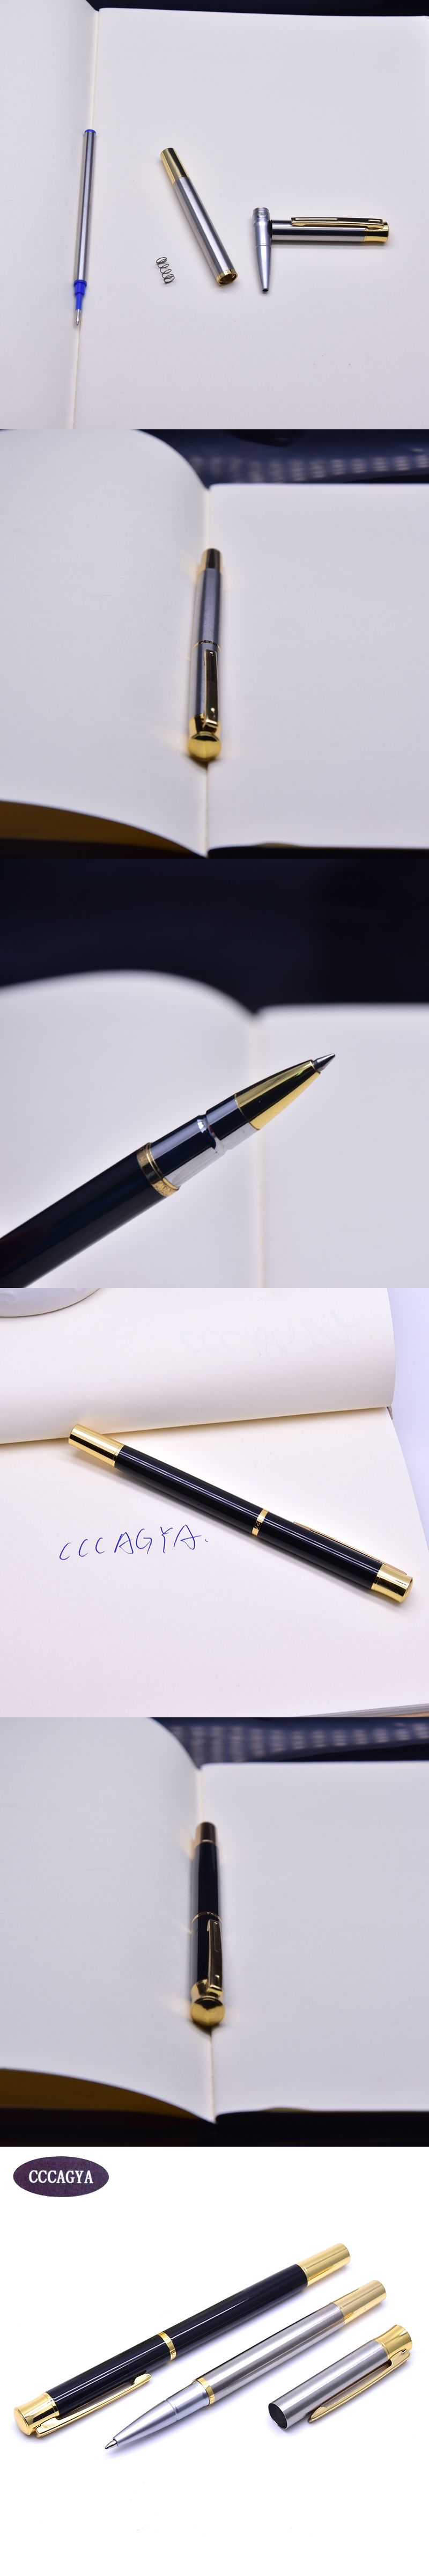 Free Delivery Cccagya C018 New Gifts Metal Pen Office School Supplies Pens Pencils